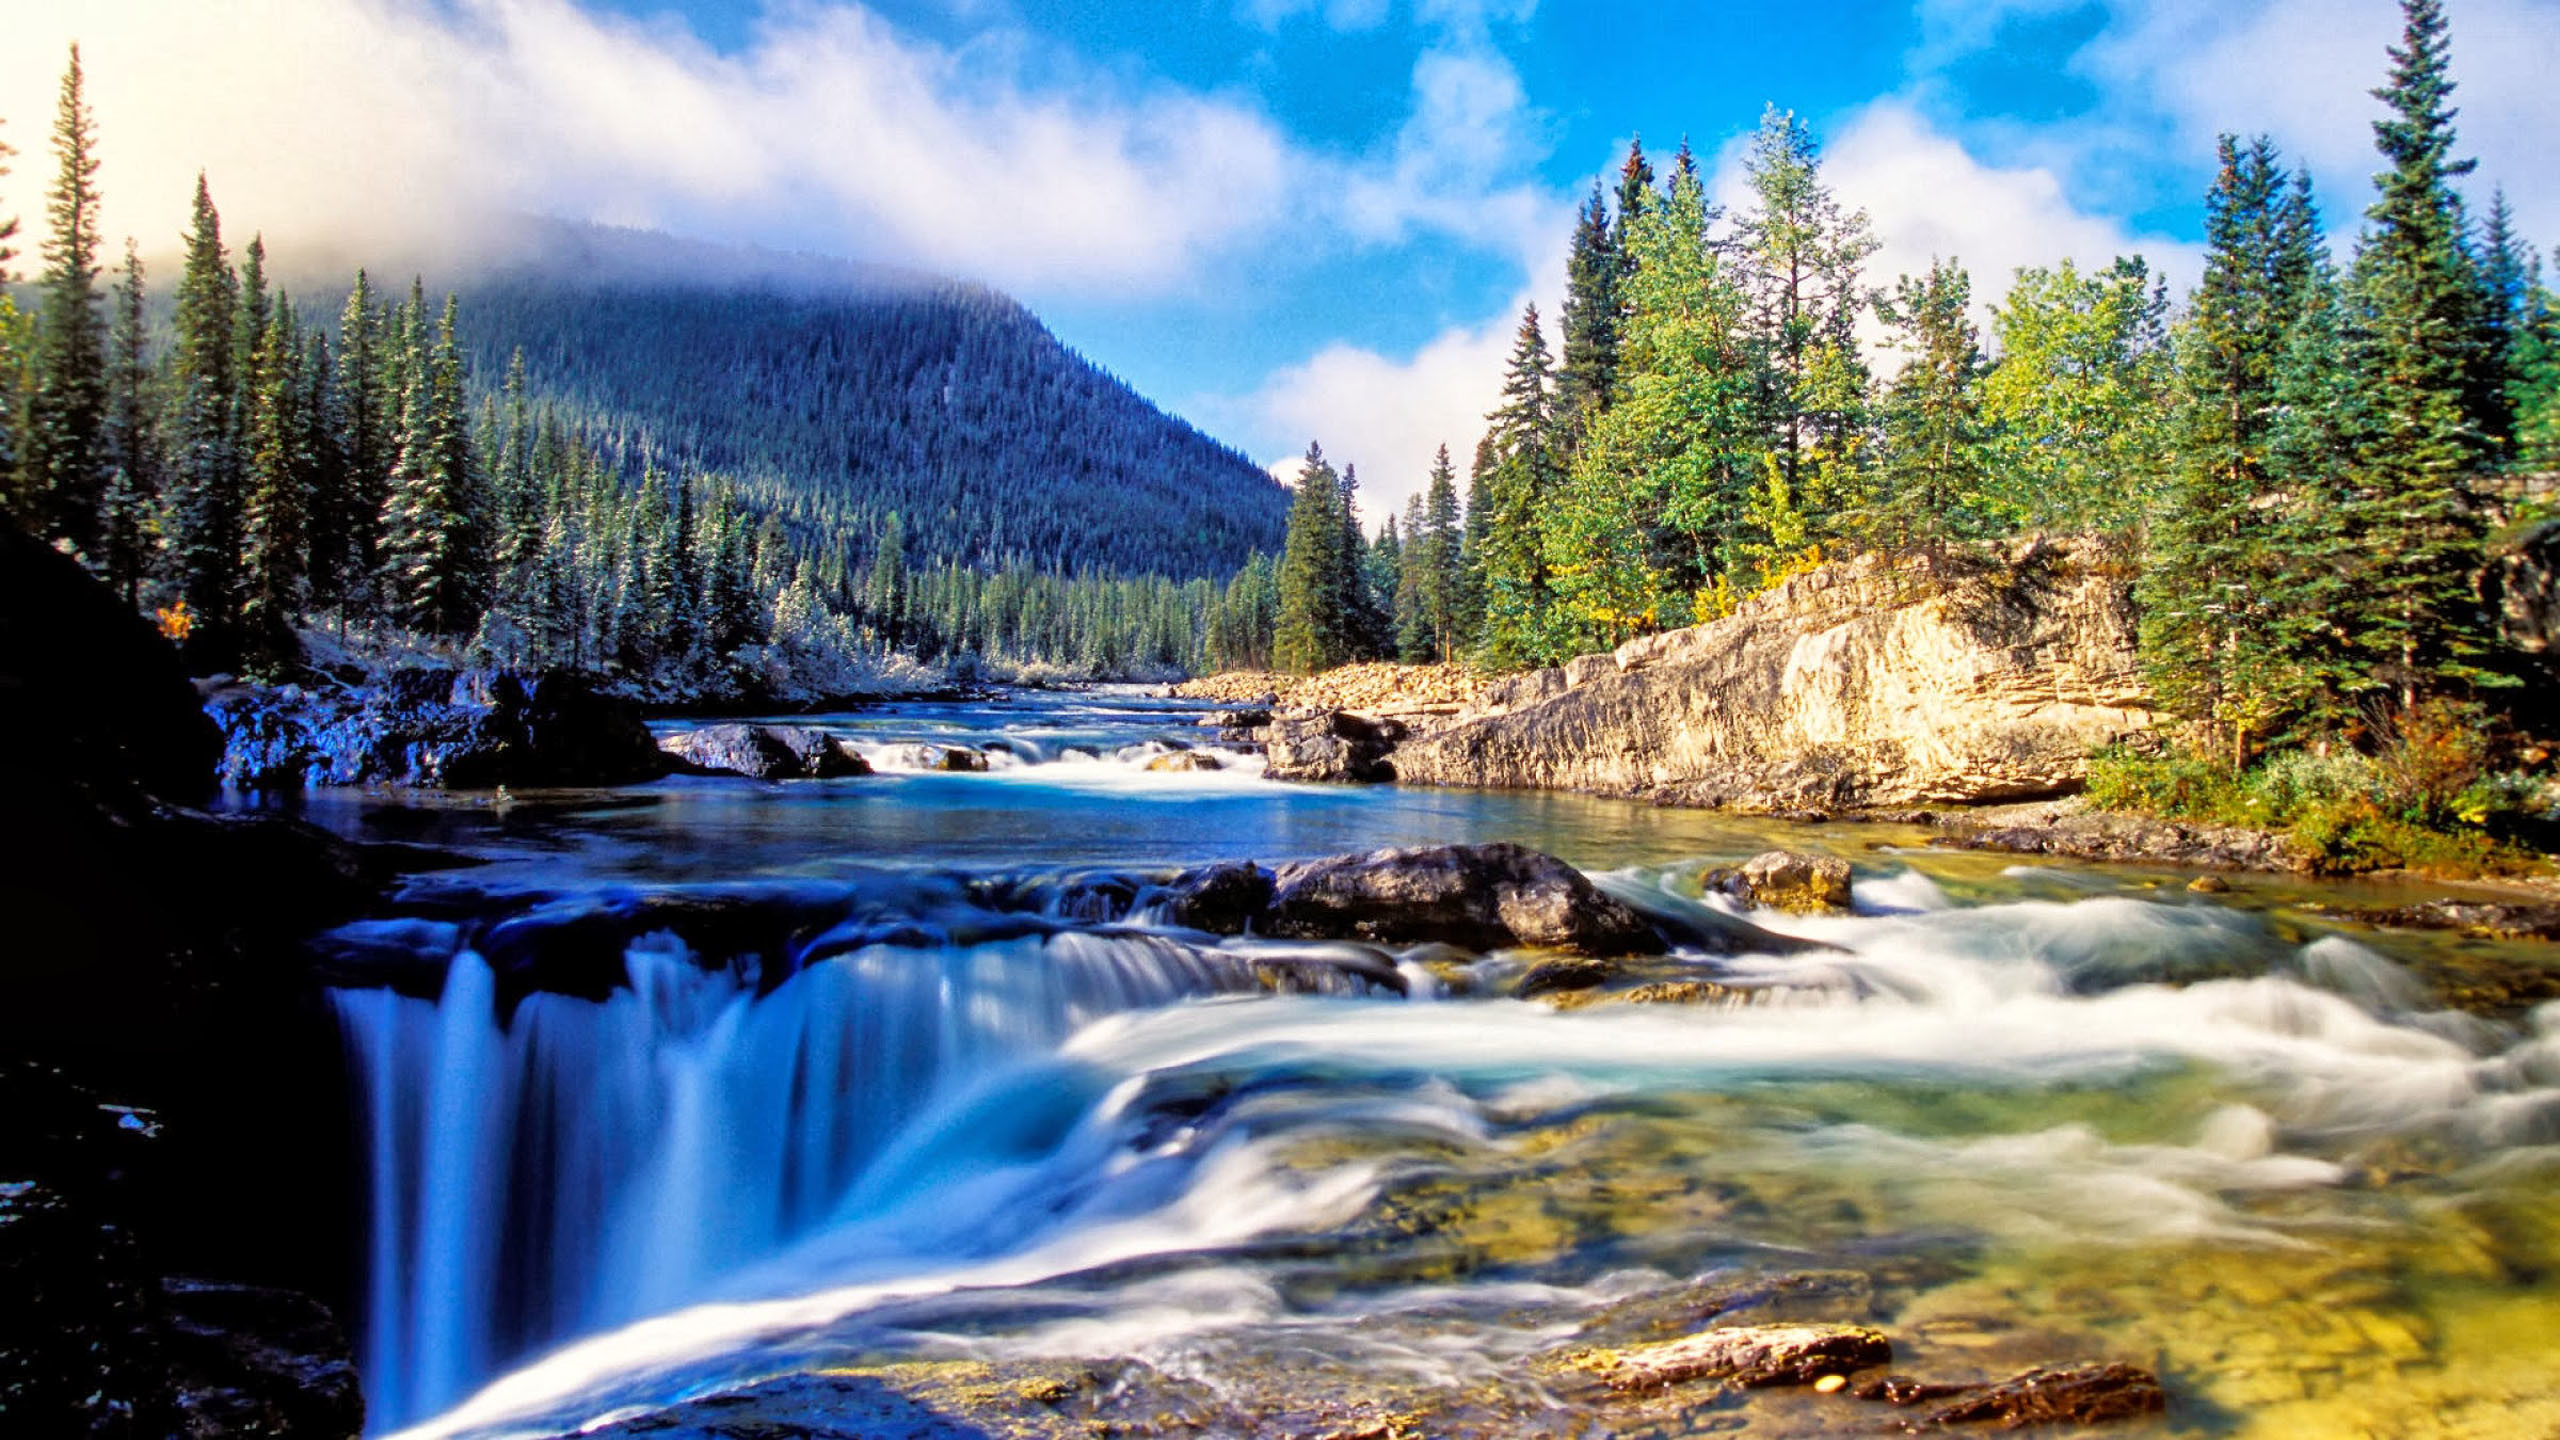 Nature Mountain Dense Spruce Forest, River Rock Waterfall Background :  Wallpapers13.com